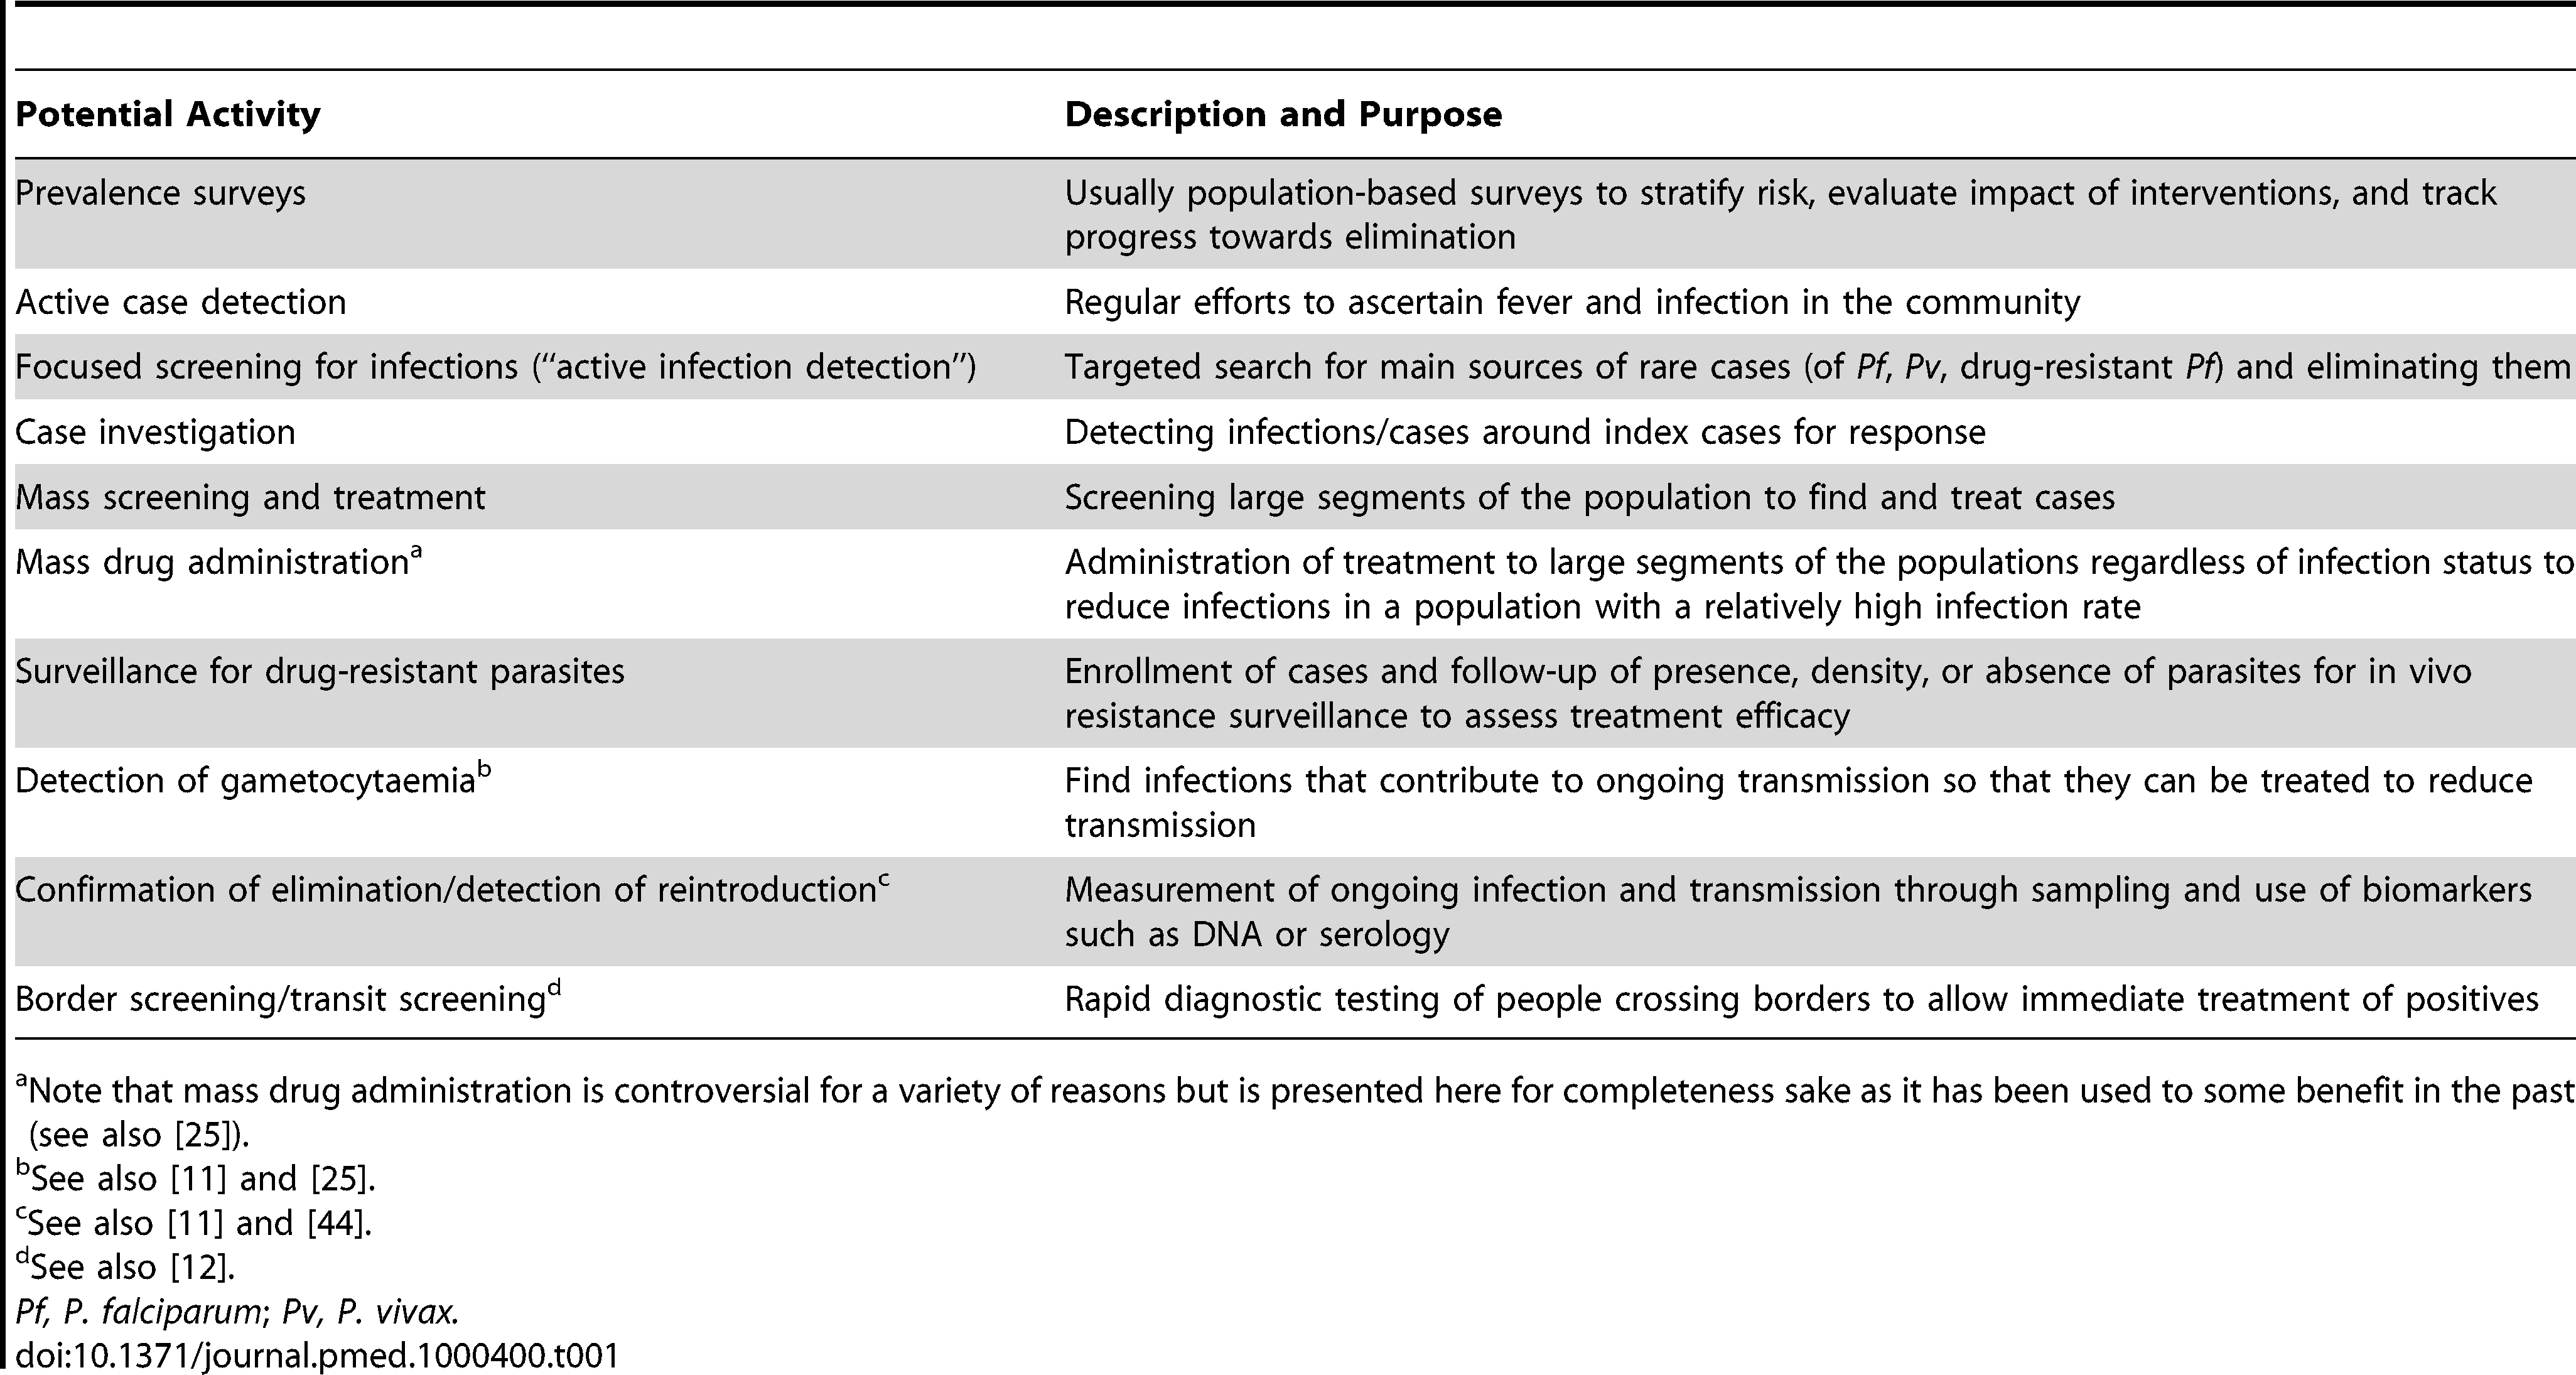 Program activities and methods for transmission reduction in populations.